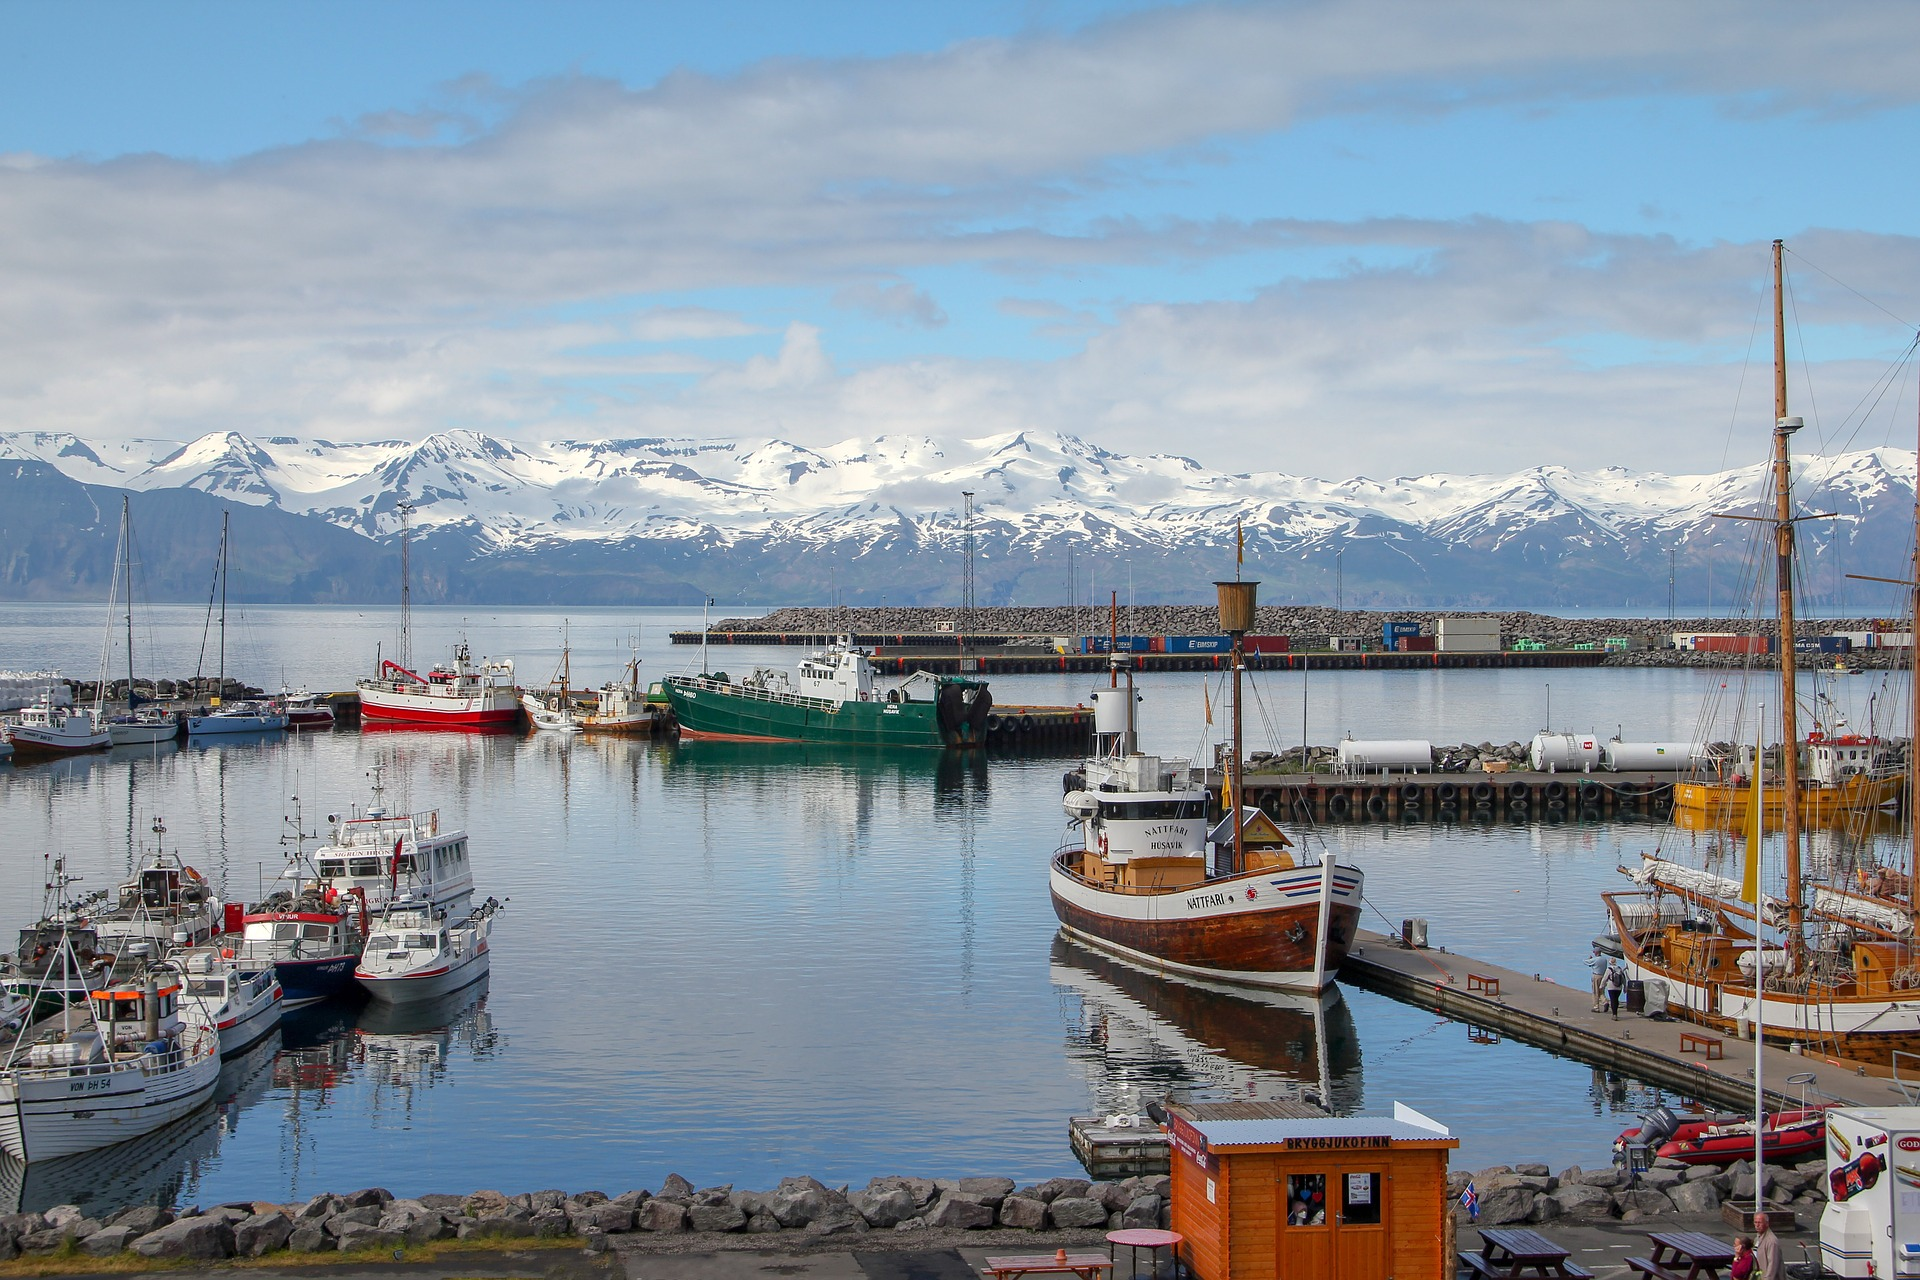 Husavik harbor, boat, water, docks